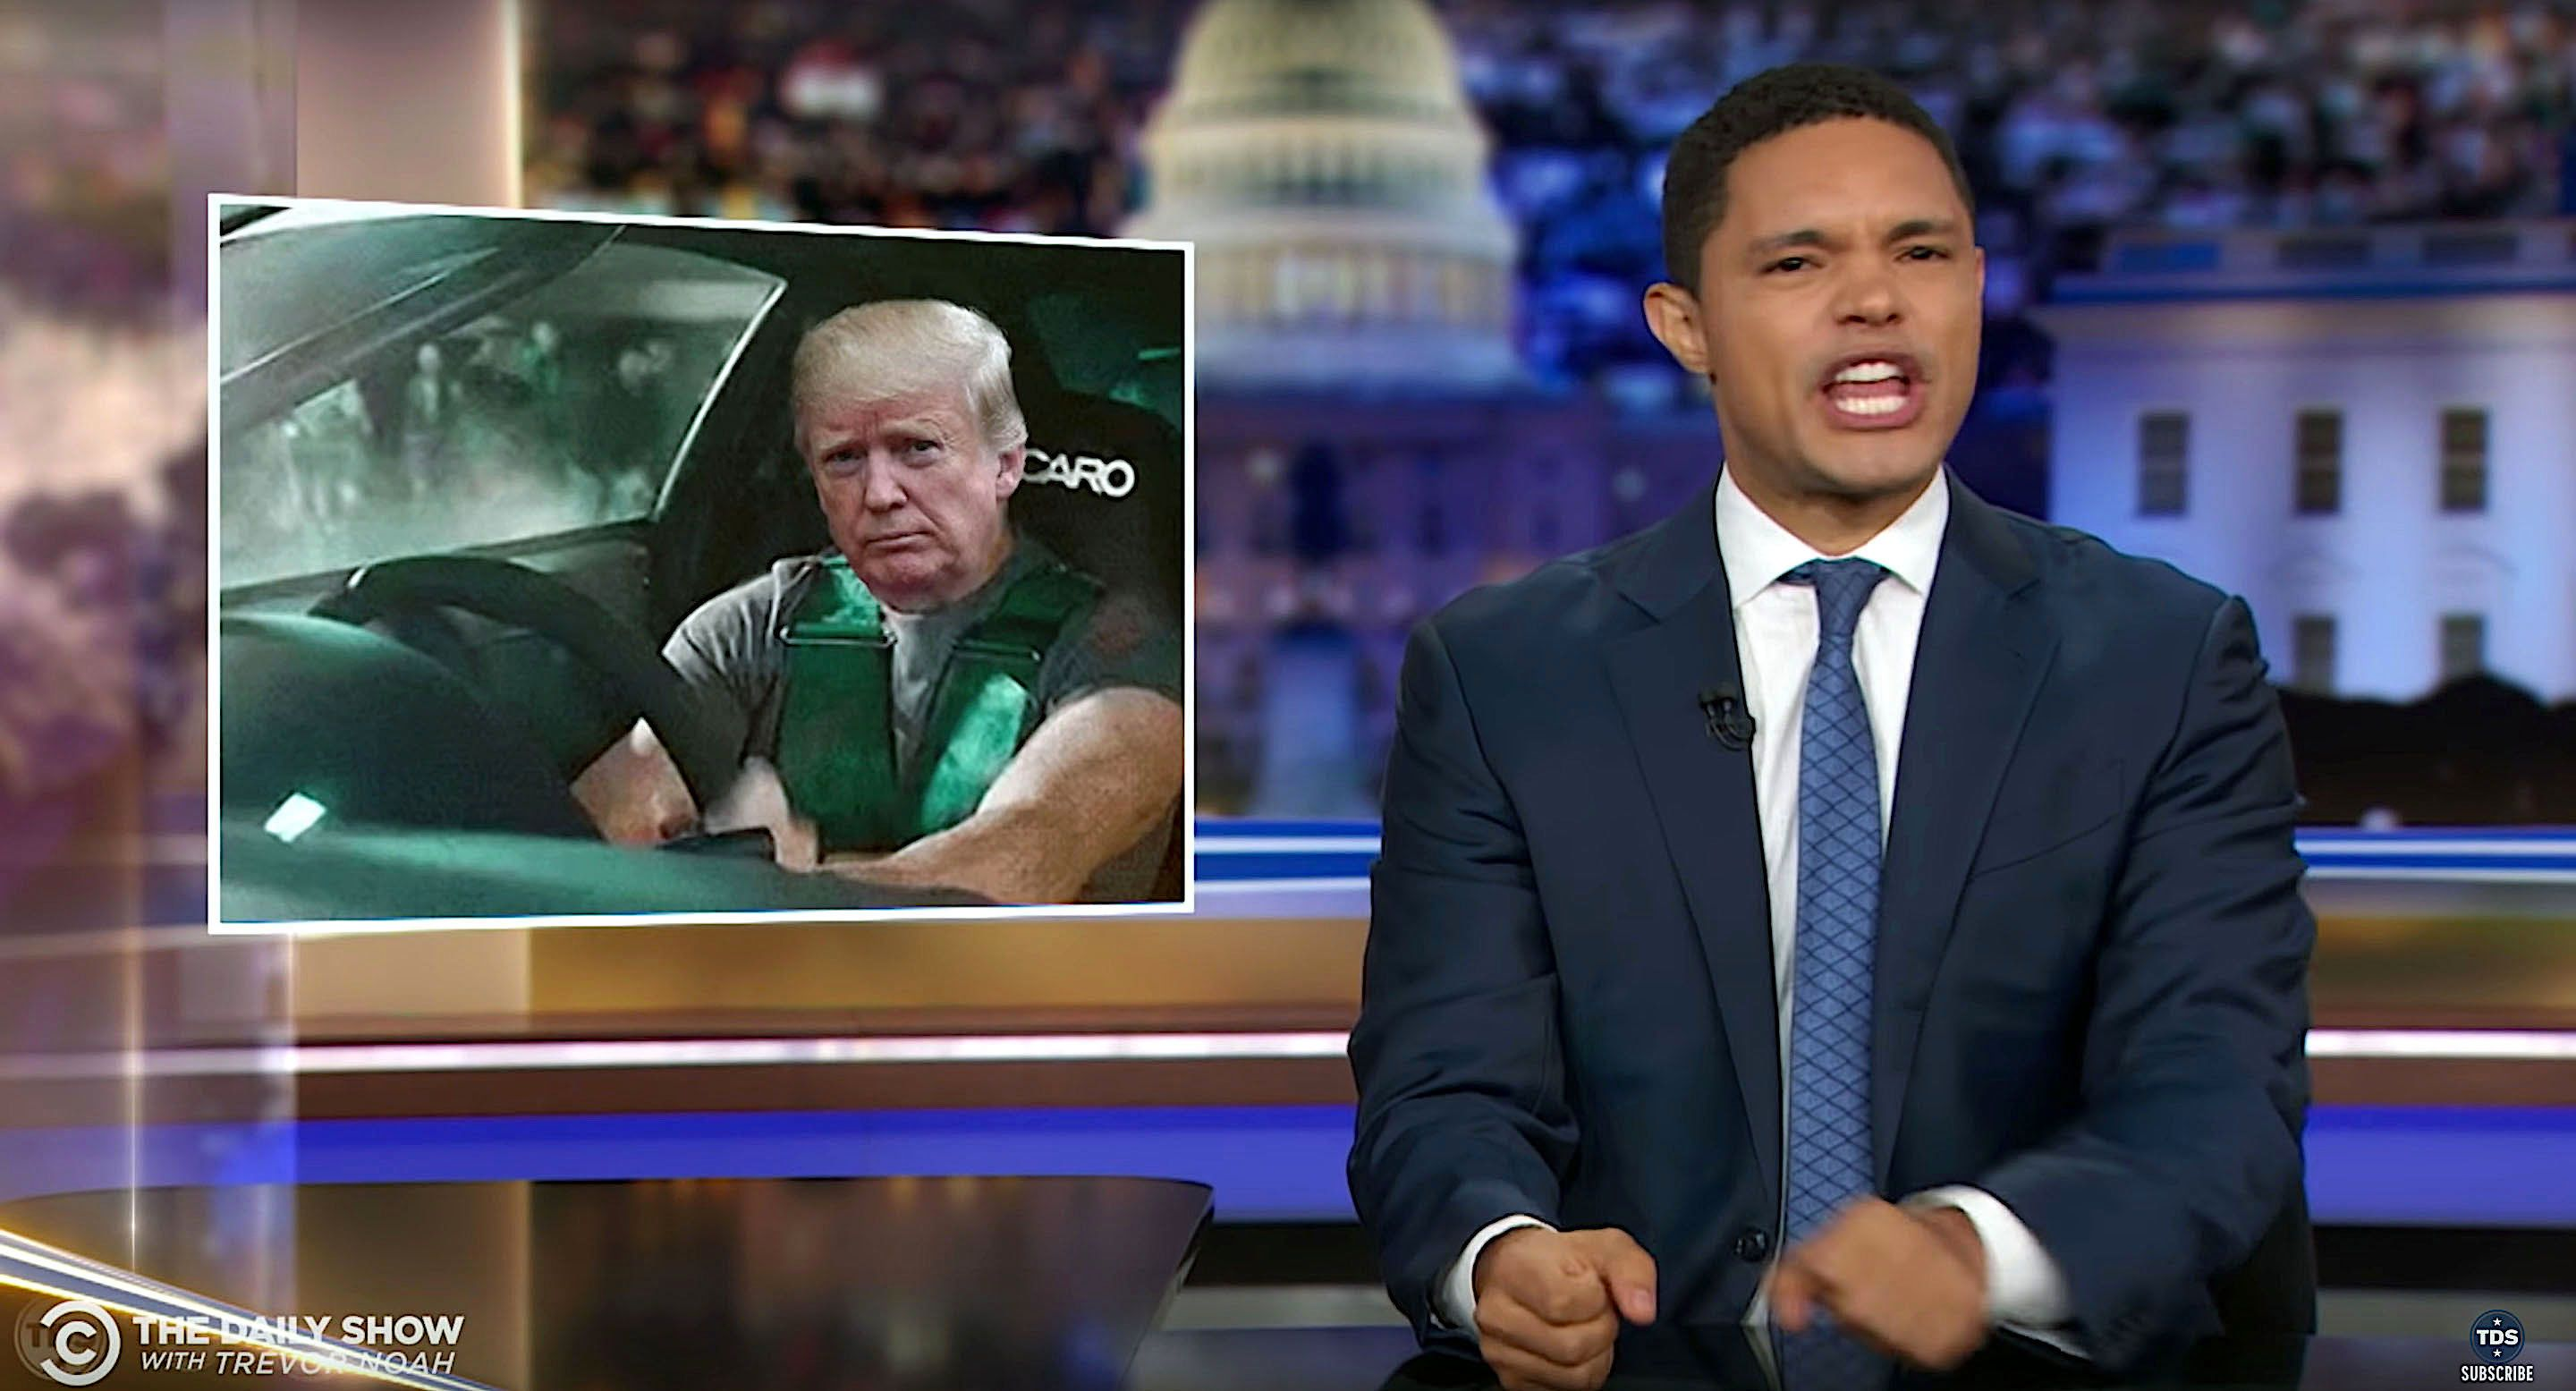 Trevor Noah says President Donald Trump's lies give him whiplash.